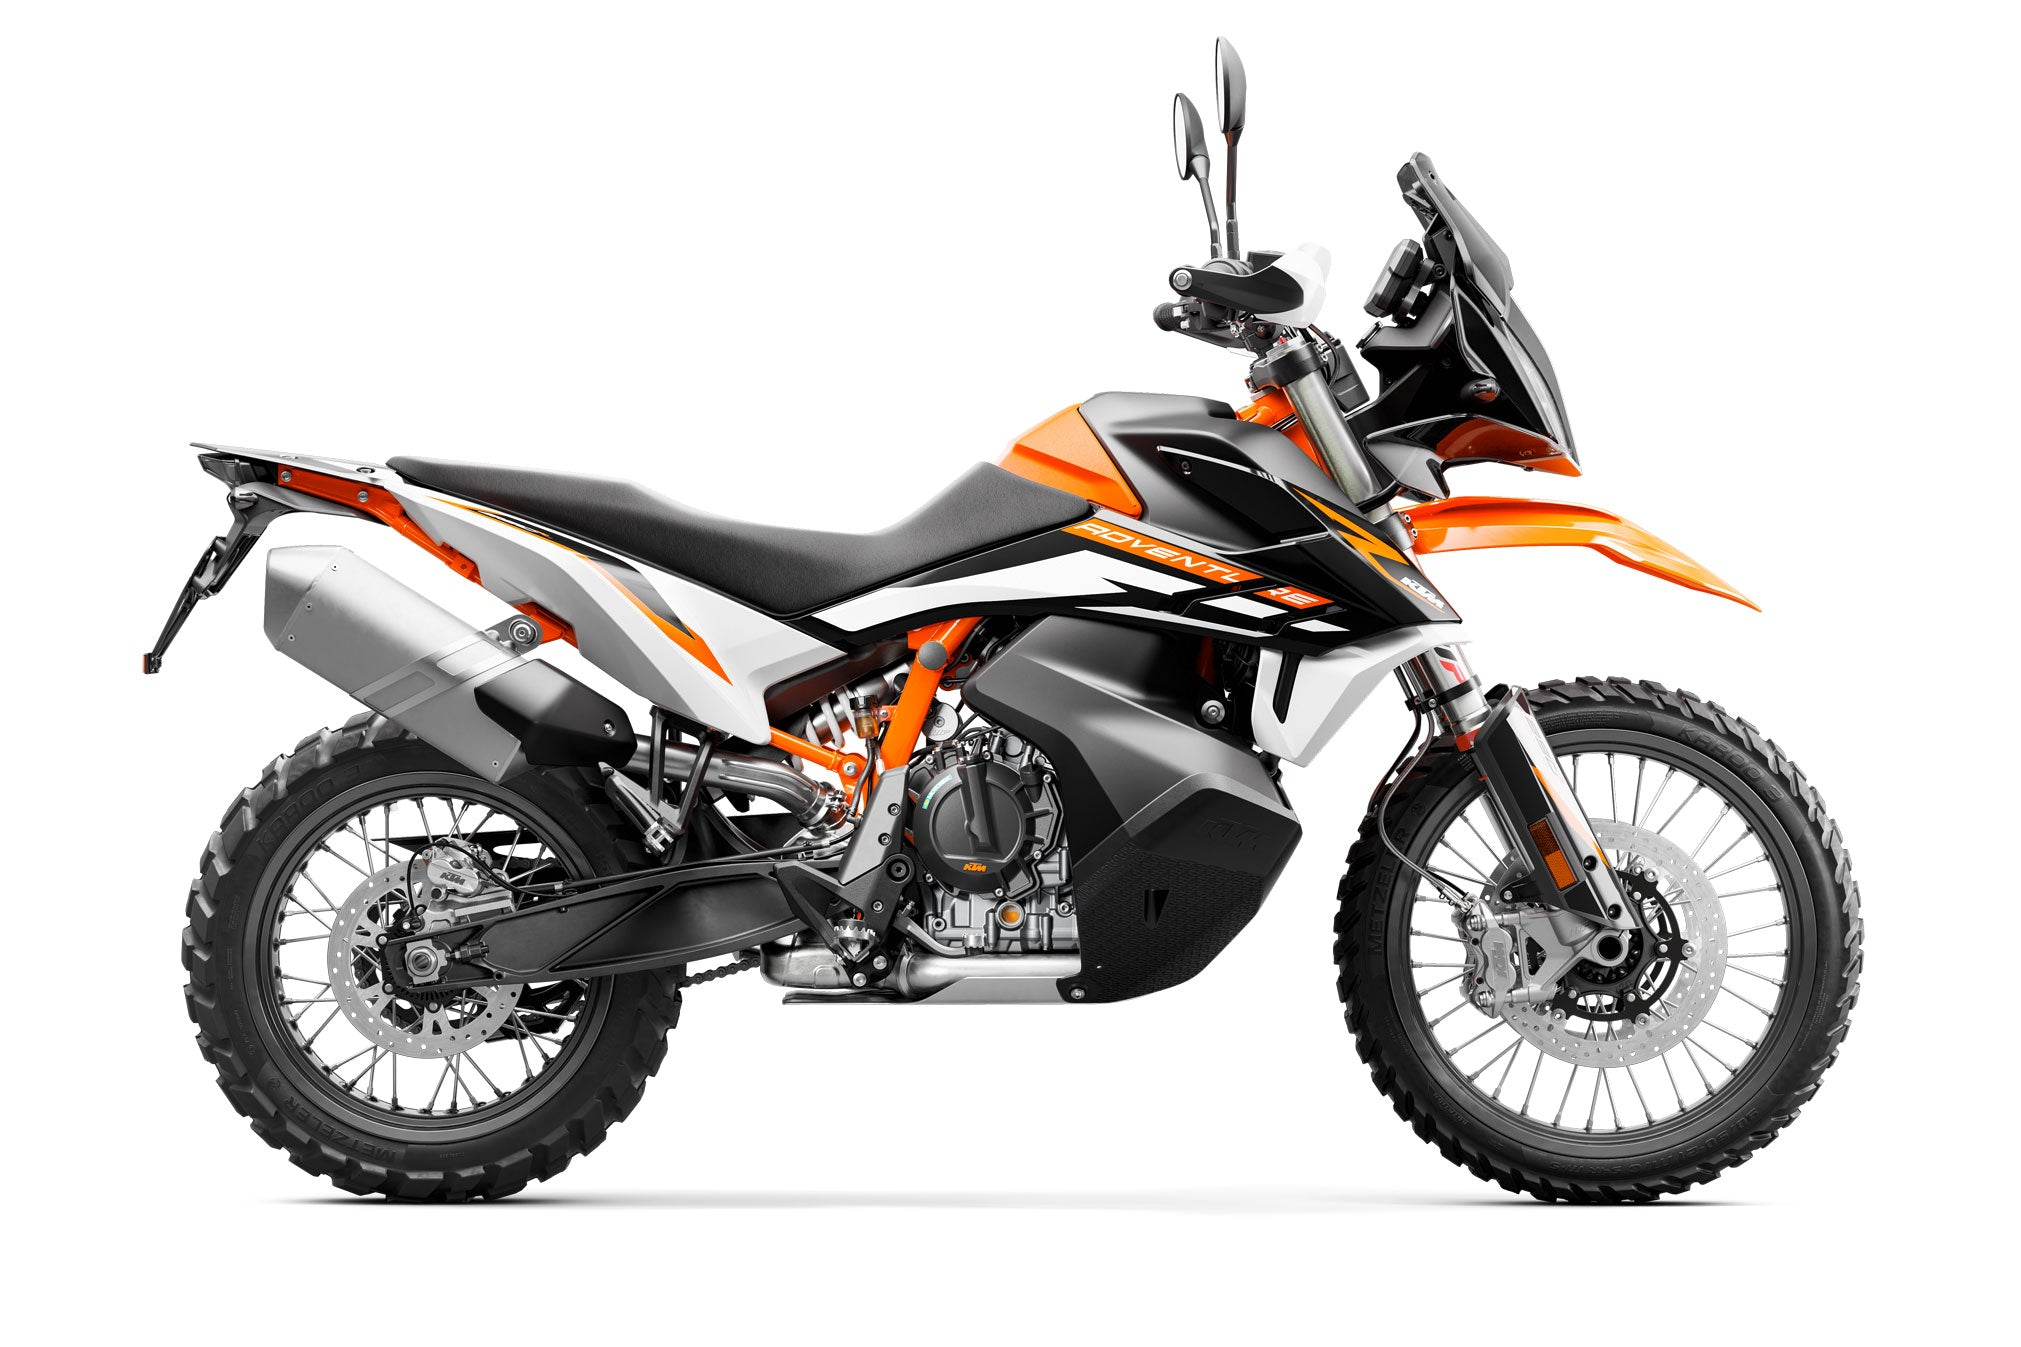 KTM 890 Adventure R for accessories